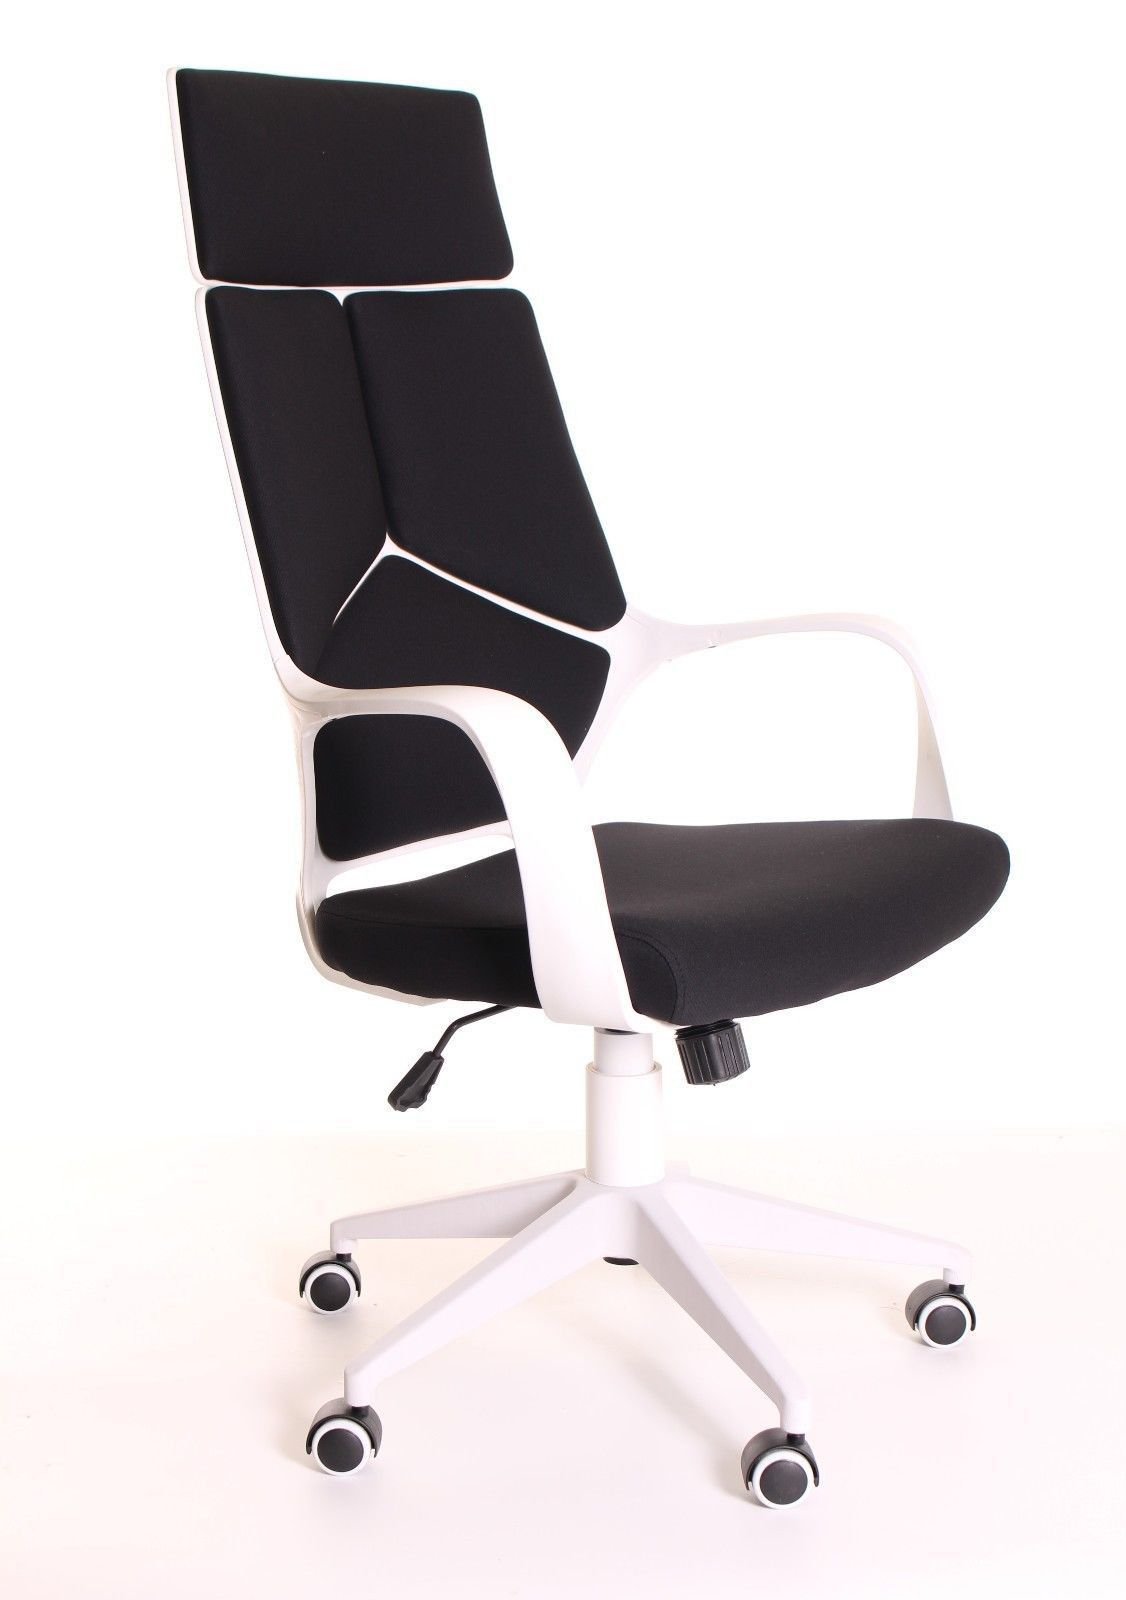 Modern Ergonomic Office Chair Black White By Timeoffice Ergonomic Office Chair Ergonomic Chair Black Office Chair